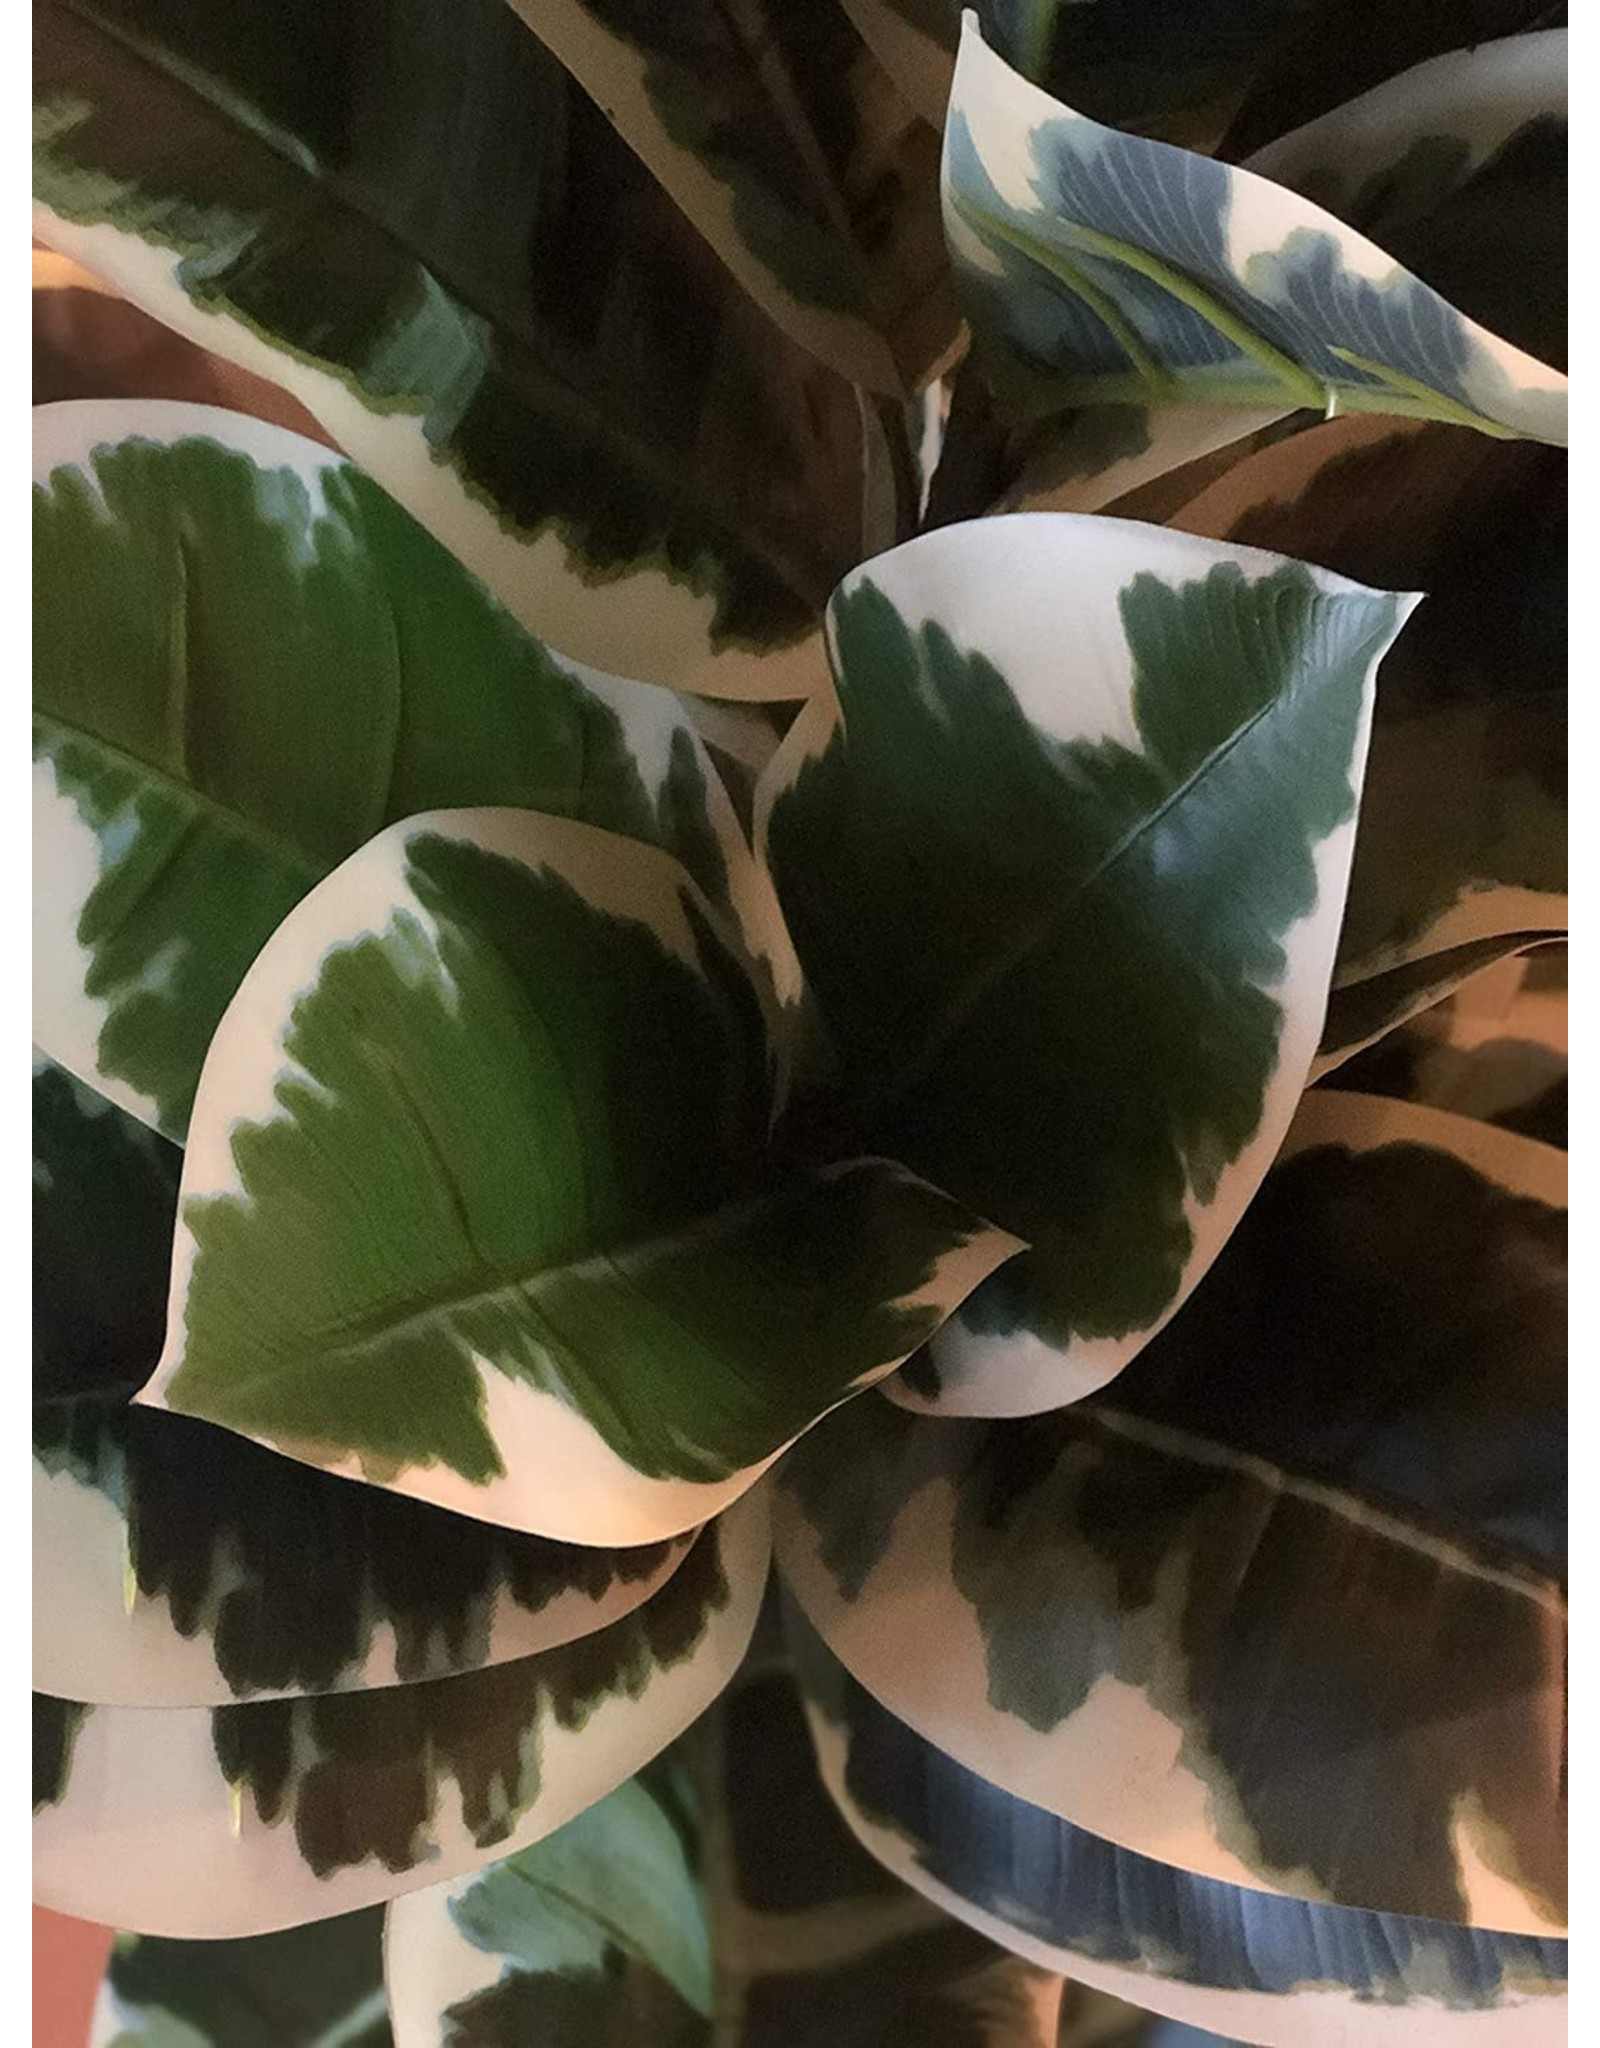 """AMERIQUE AMERIQUE Gorgeous & Rare 6 Feet Oak Artificial Plant Tree with 93 Leaves, in 8"""" Nursery Pot, Real Touch Technology, Super Quality Tech, Green"""